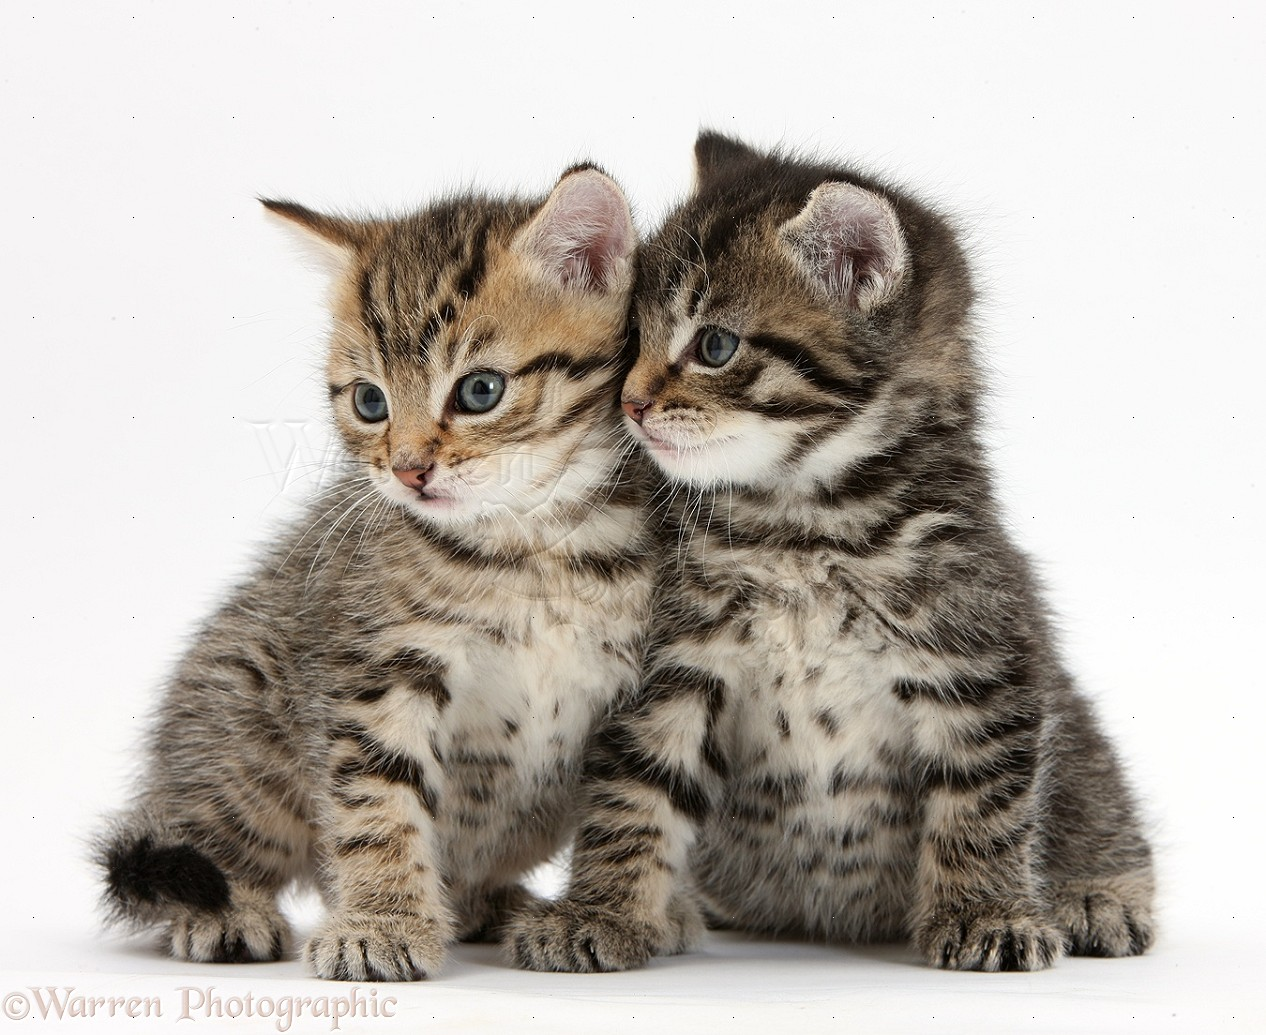 25  Adorable Cute Tabby Kittens